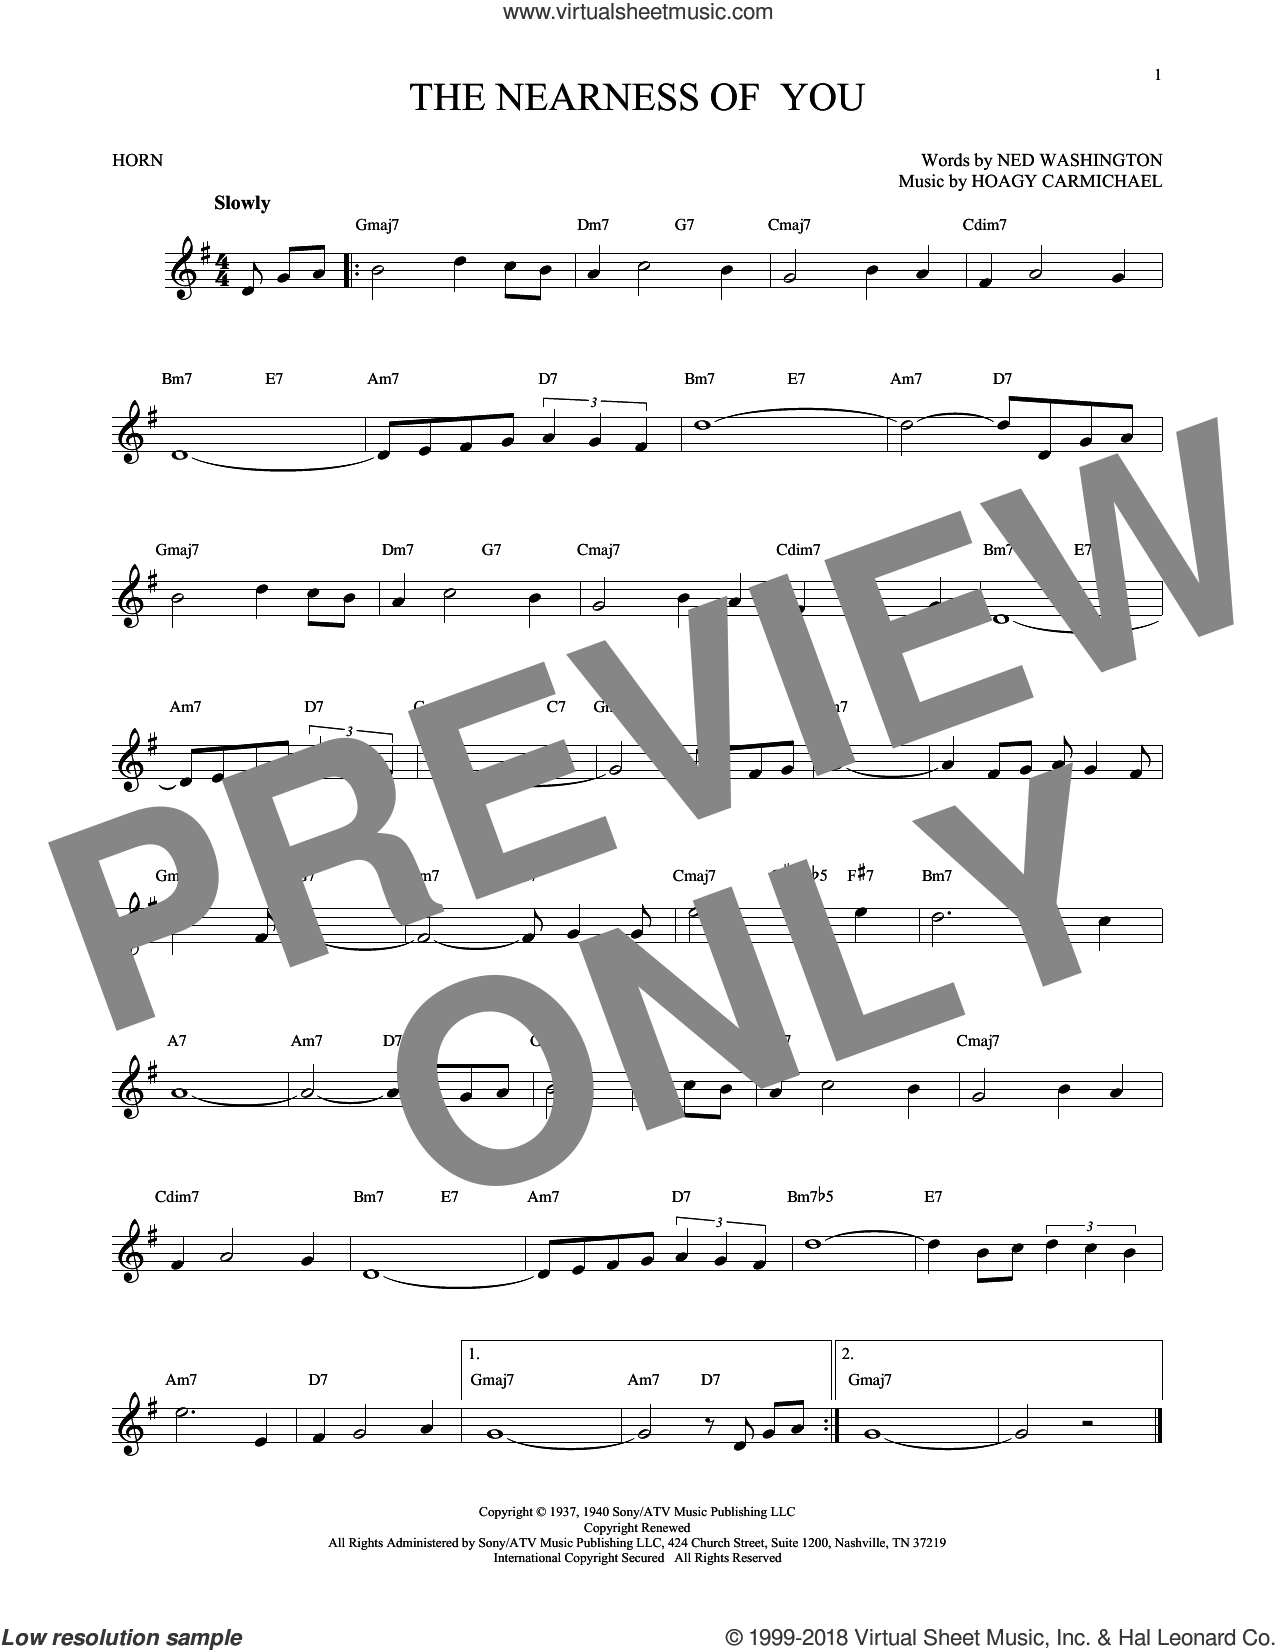 The Nearness Of You sheet music for horn solo by Hoagy Carmichael, George Shearing and Ned Washington, intermediate skill level